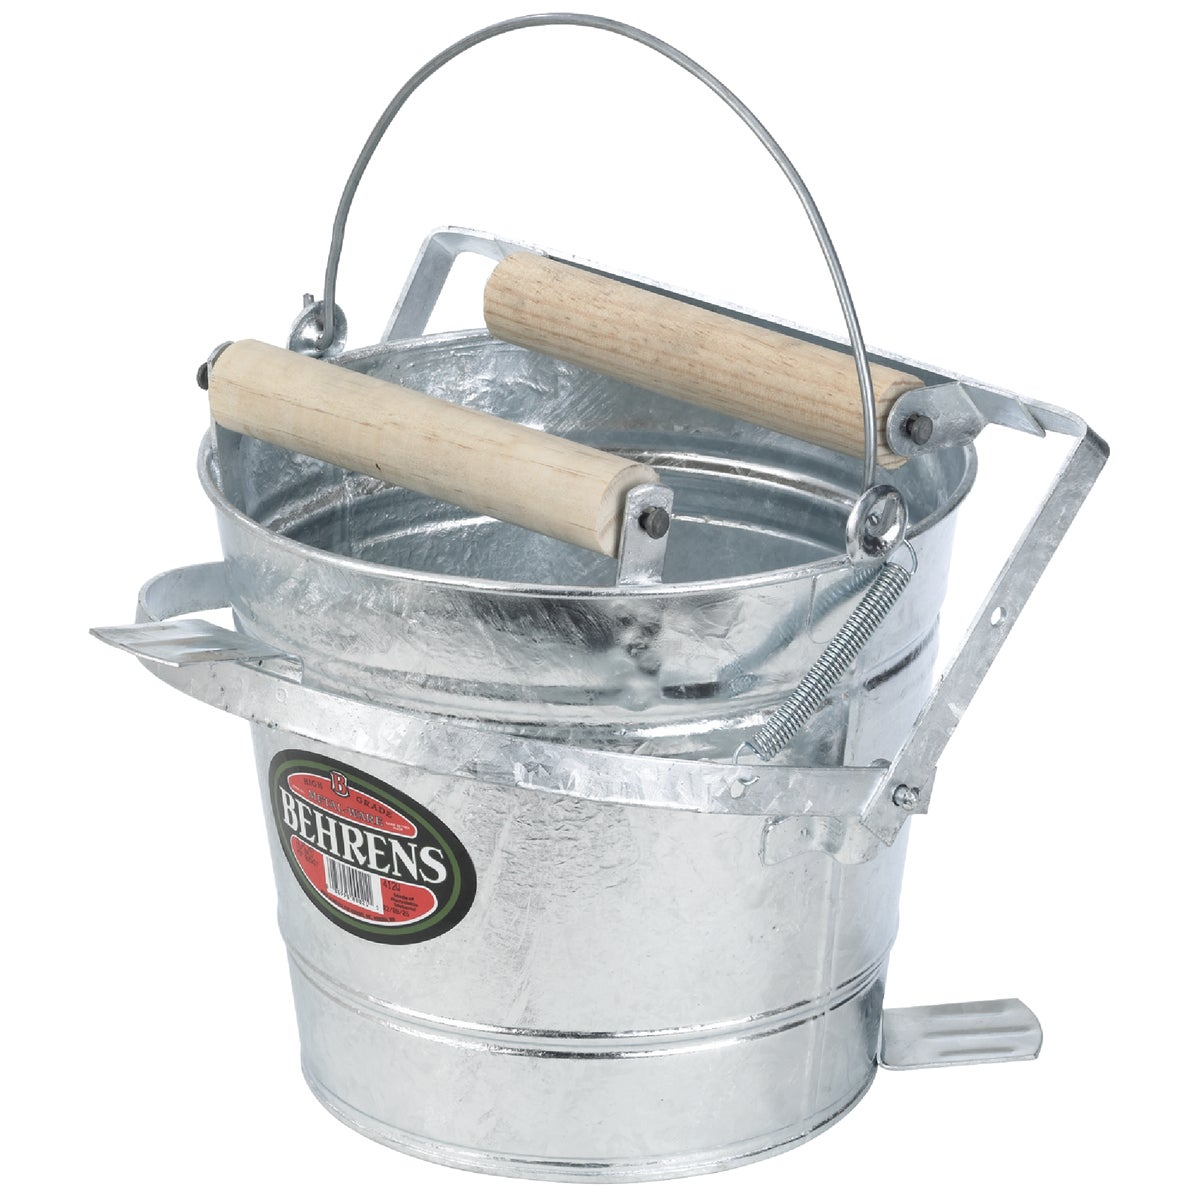 12QT MOP BUCKET - 412W by Behrens Mfg